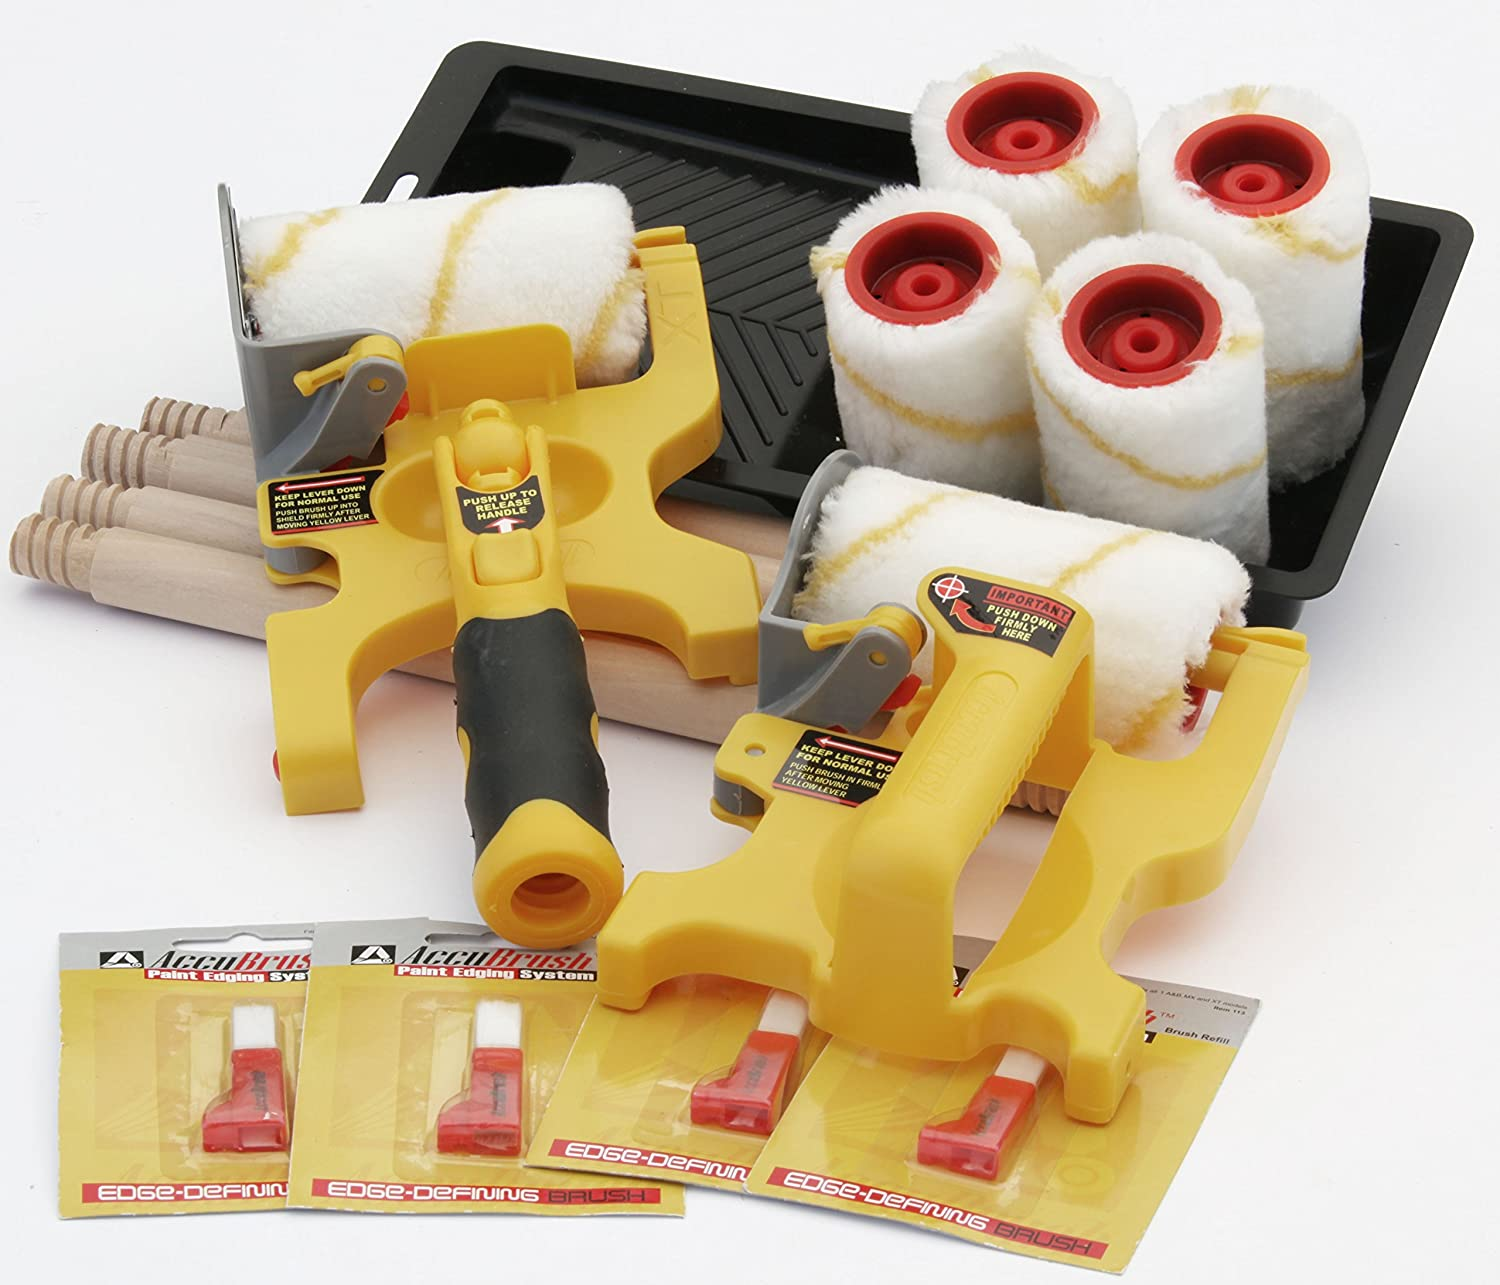 Accubrush MX XT Complete Paint Edging tool